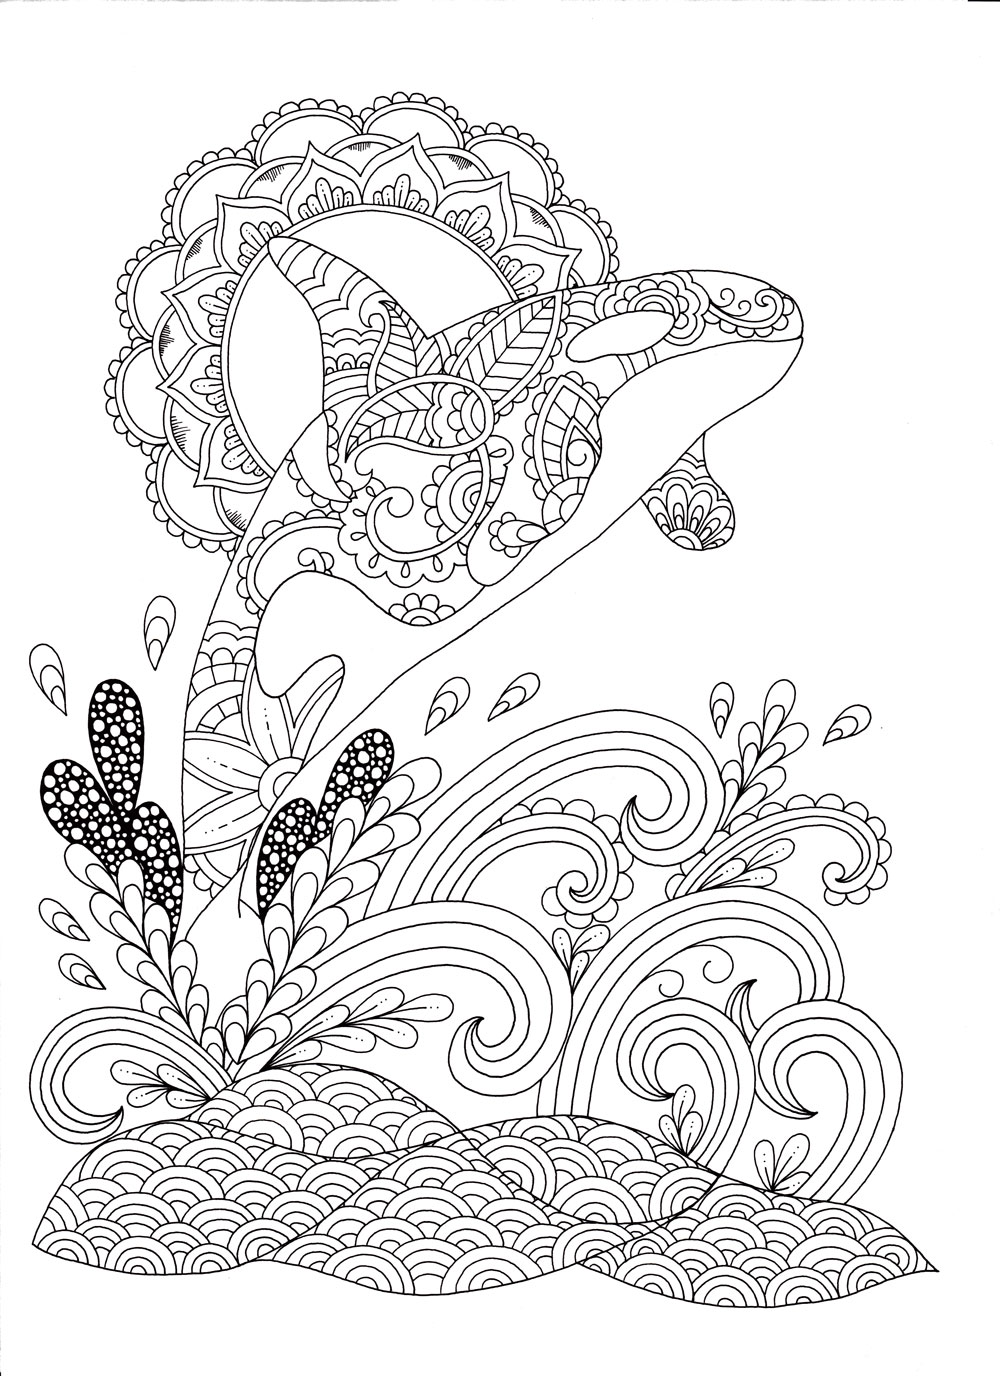 Stress Coloring Pages Animals : Special needs book review